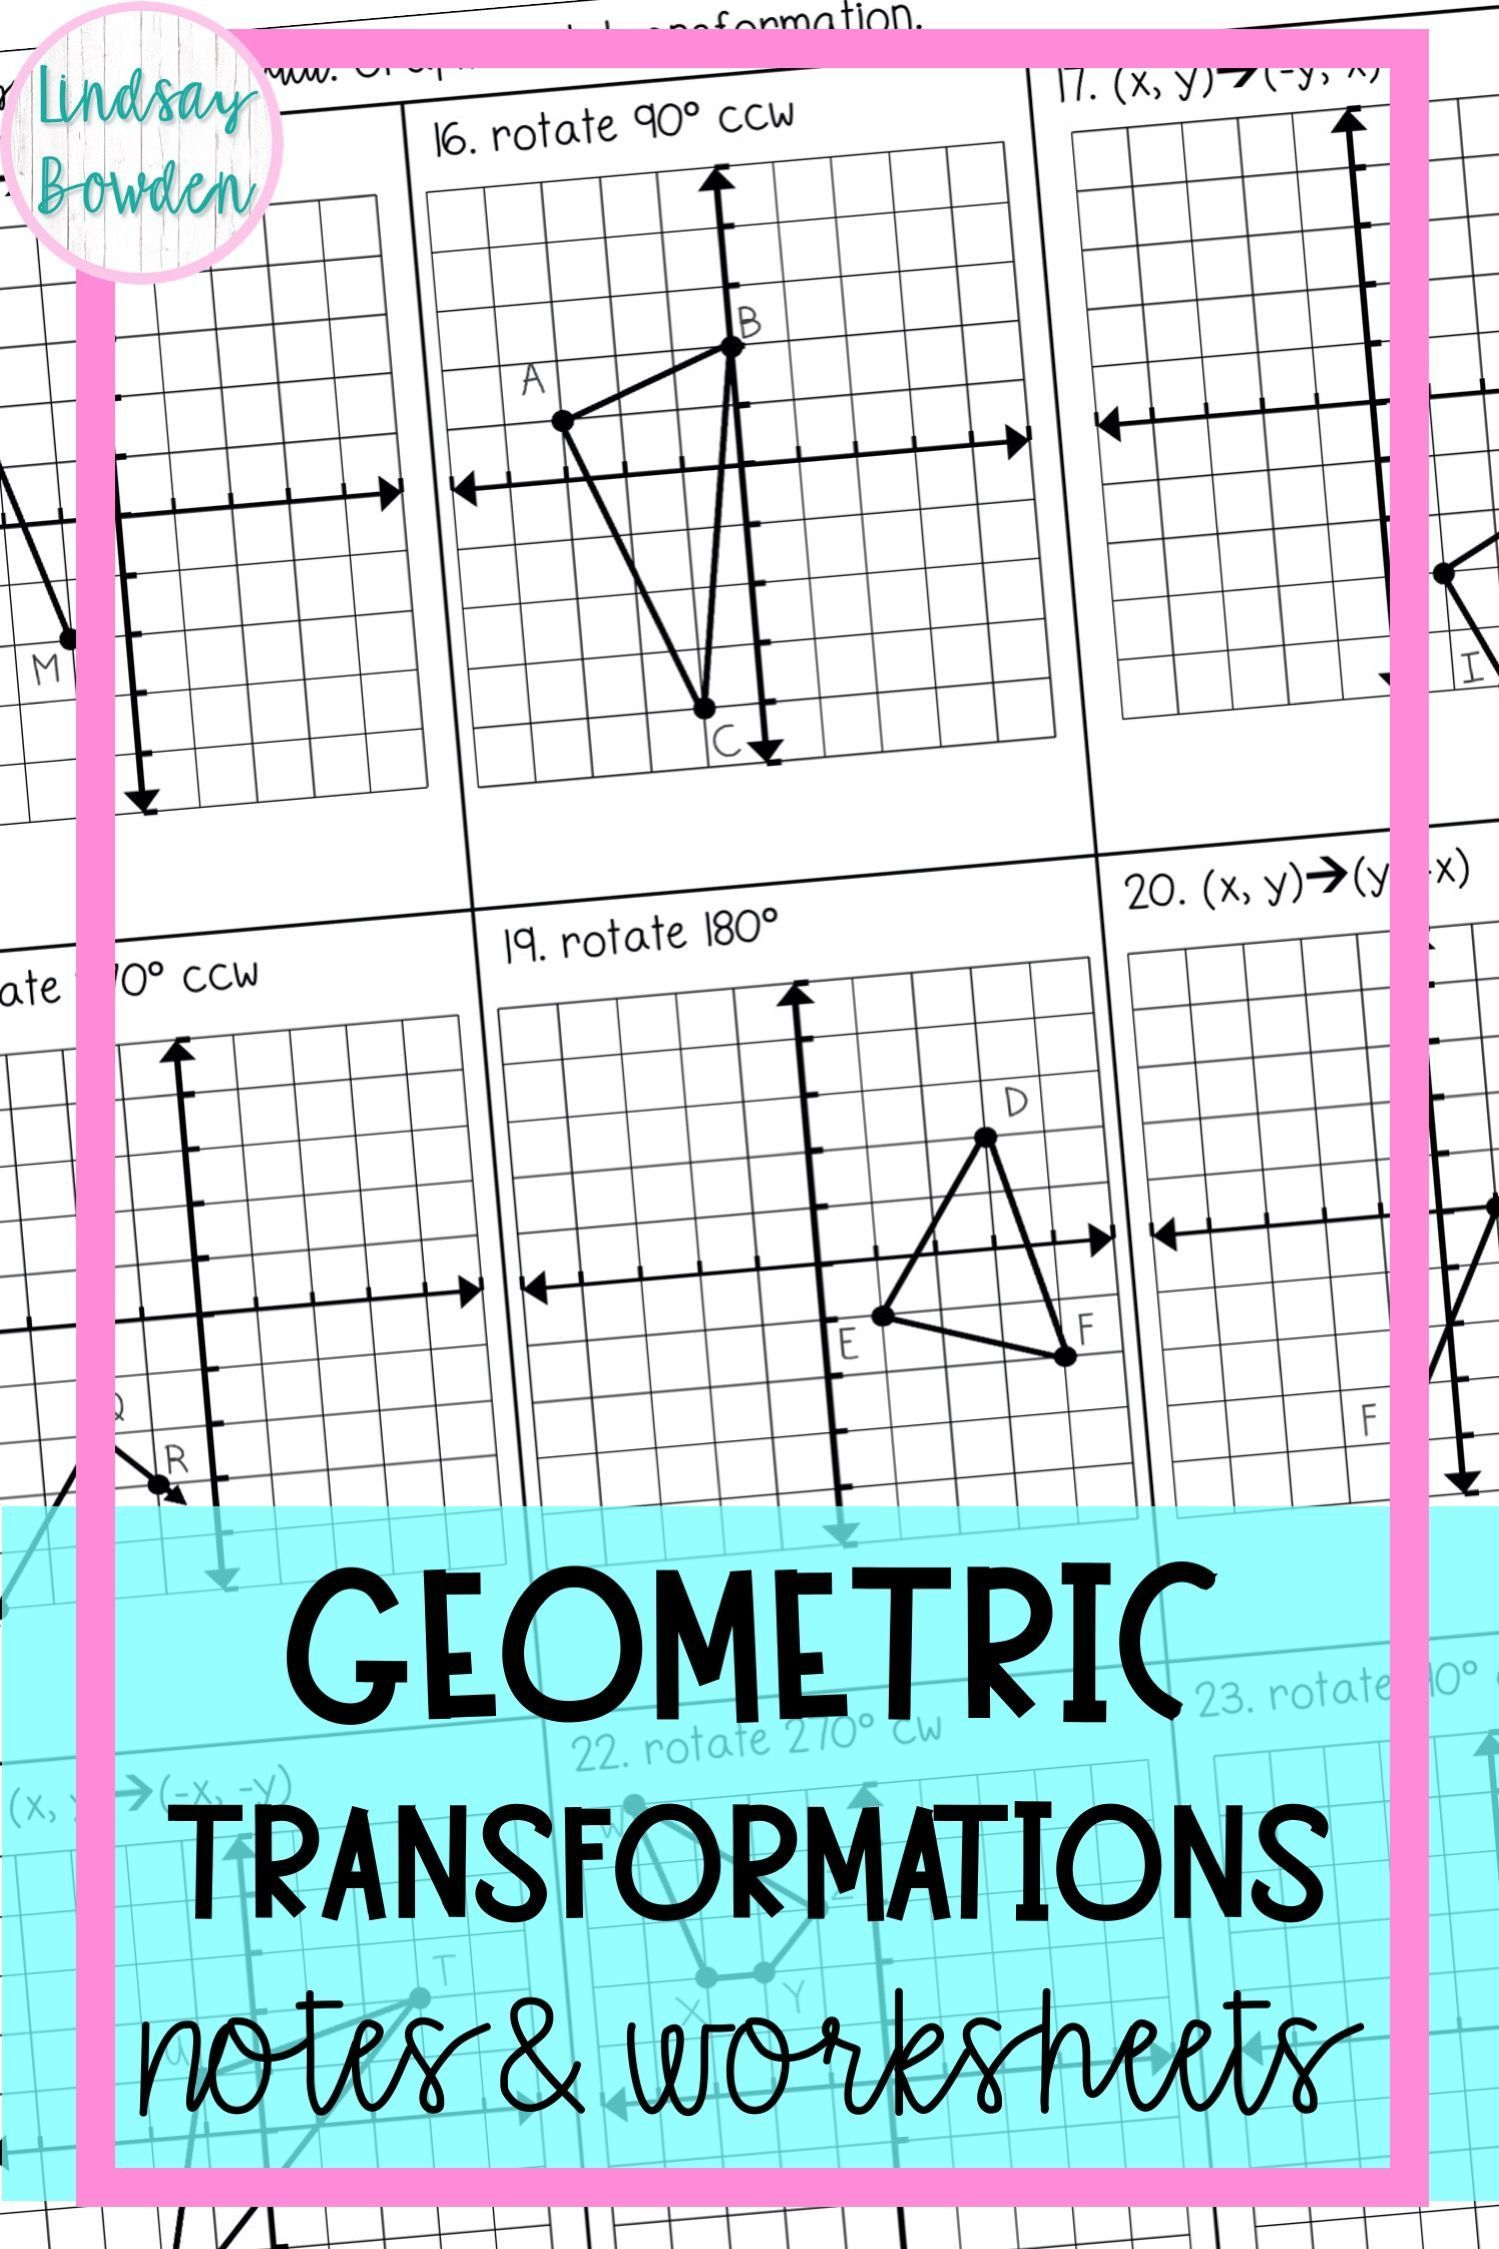 Transformations Notes And Worksheets In 2021 High School Geometry Notes Secondary Math Geometry Notes [ 2249 x 1499 Pixel ]